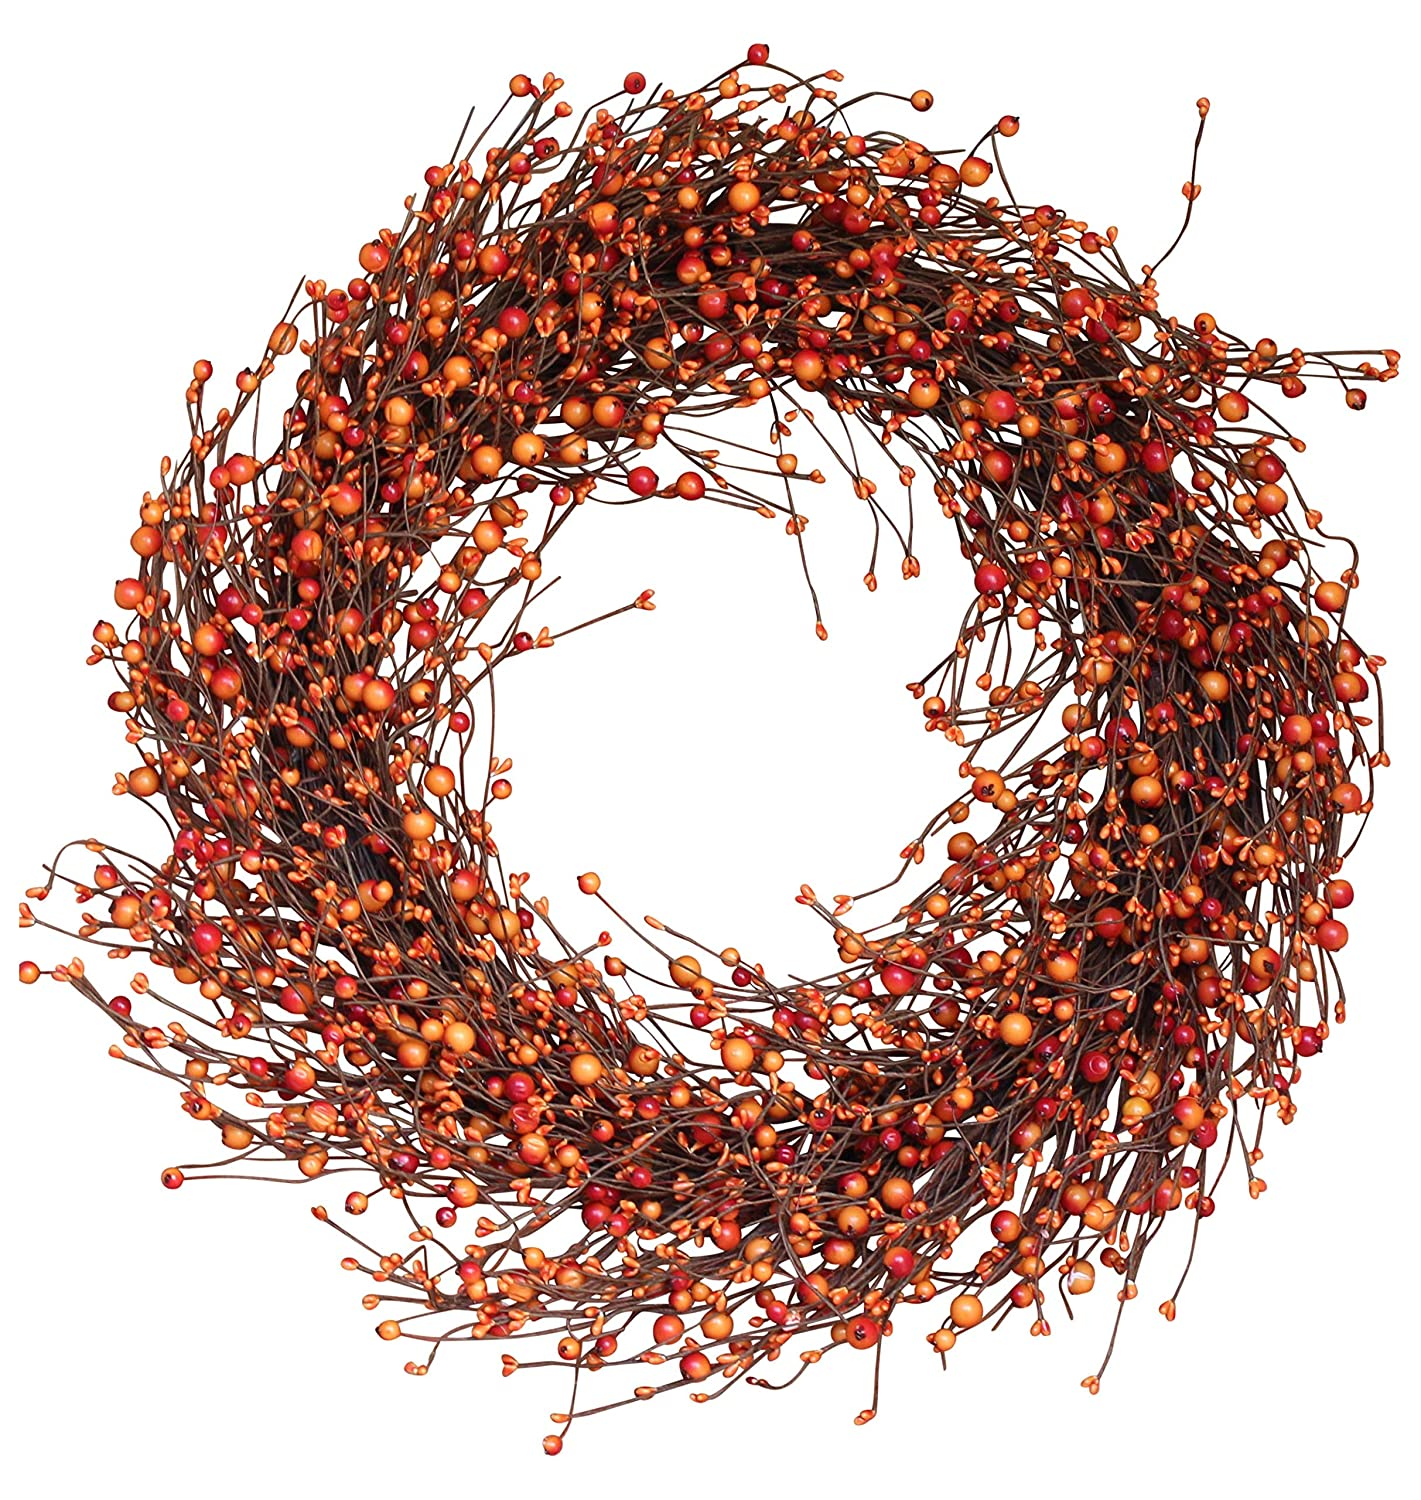 Weston Fall Berry Wreath 22 Inches - Enhances Front Door Decor with Designer Quality, Approved for Covered Outdoor Use, Beautiful White Gift Box Included The Wreath Depot